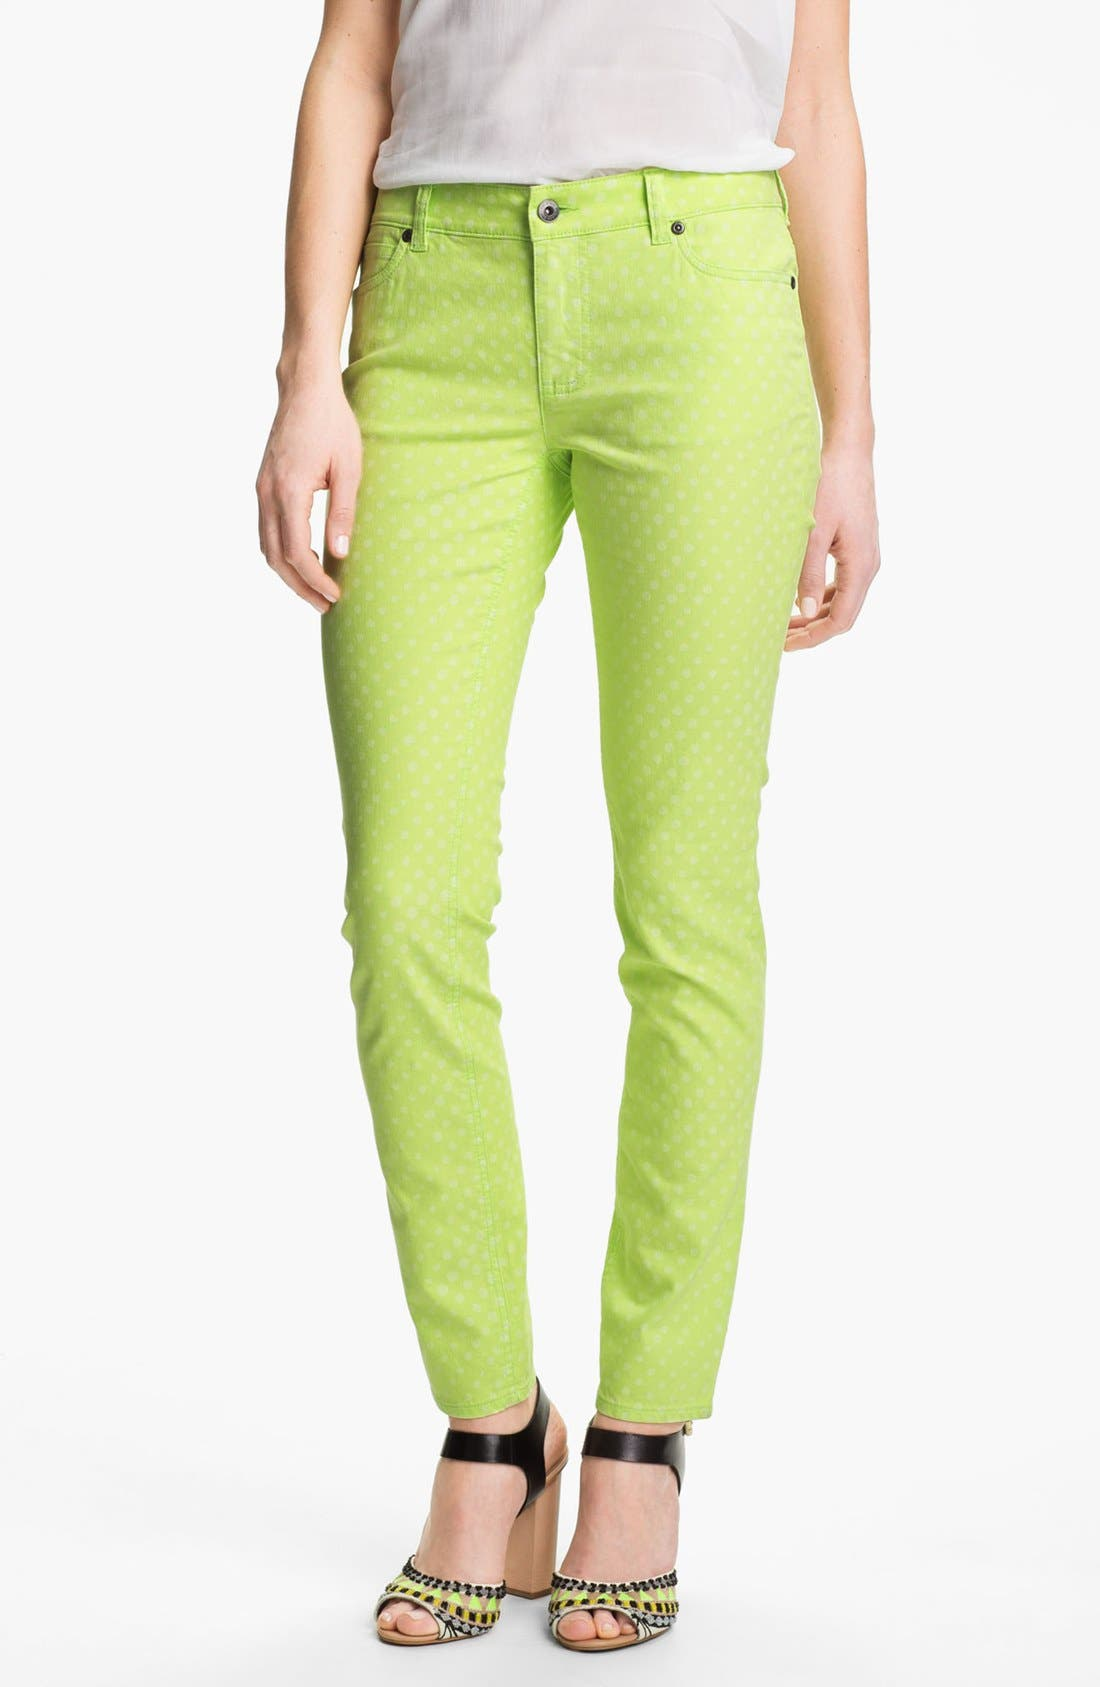 Alternate Image 1 Selected - Two by Vince Camuto Polka Dot Straight Leg Jeans